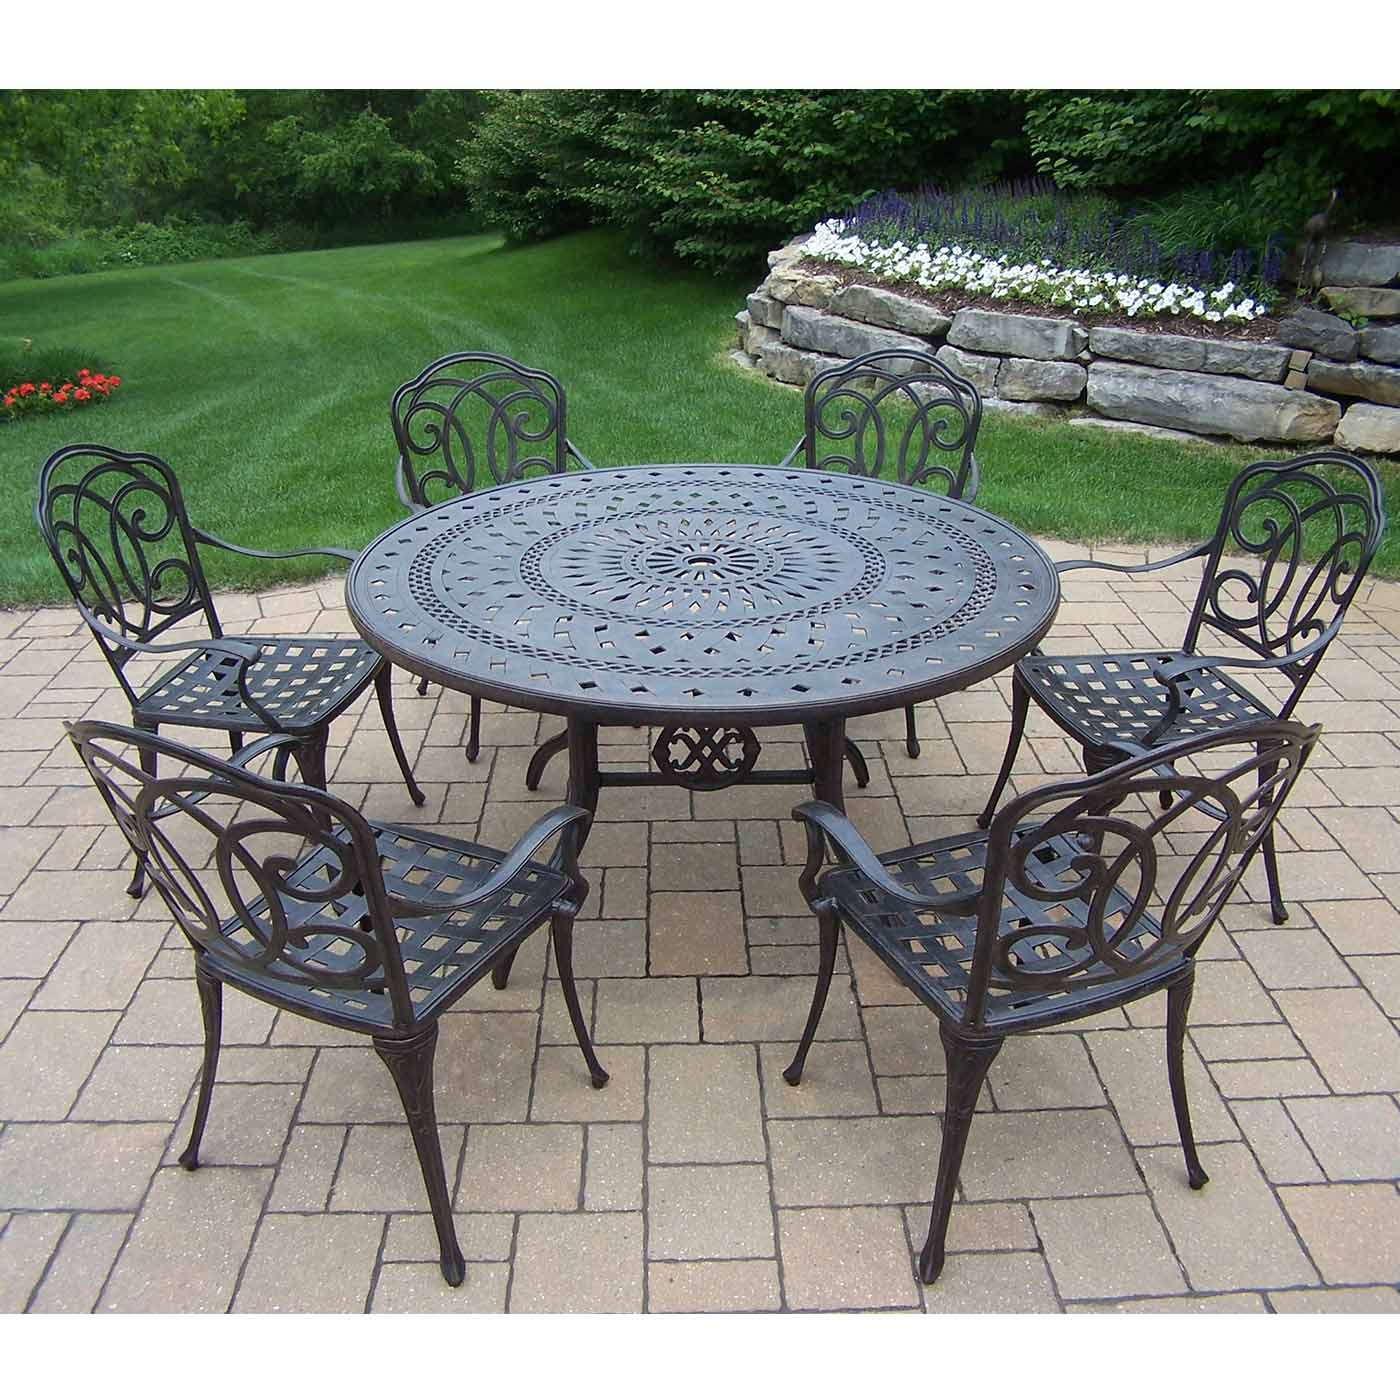 Patio Furniture Round Table Set: Oakland Living Berkley 7 Piece Aged Patio Set With 54